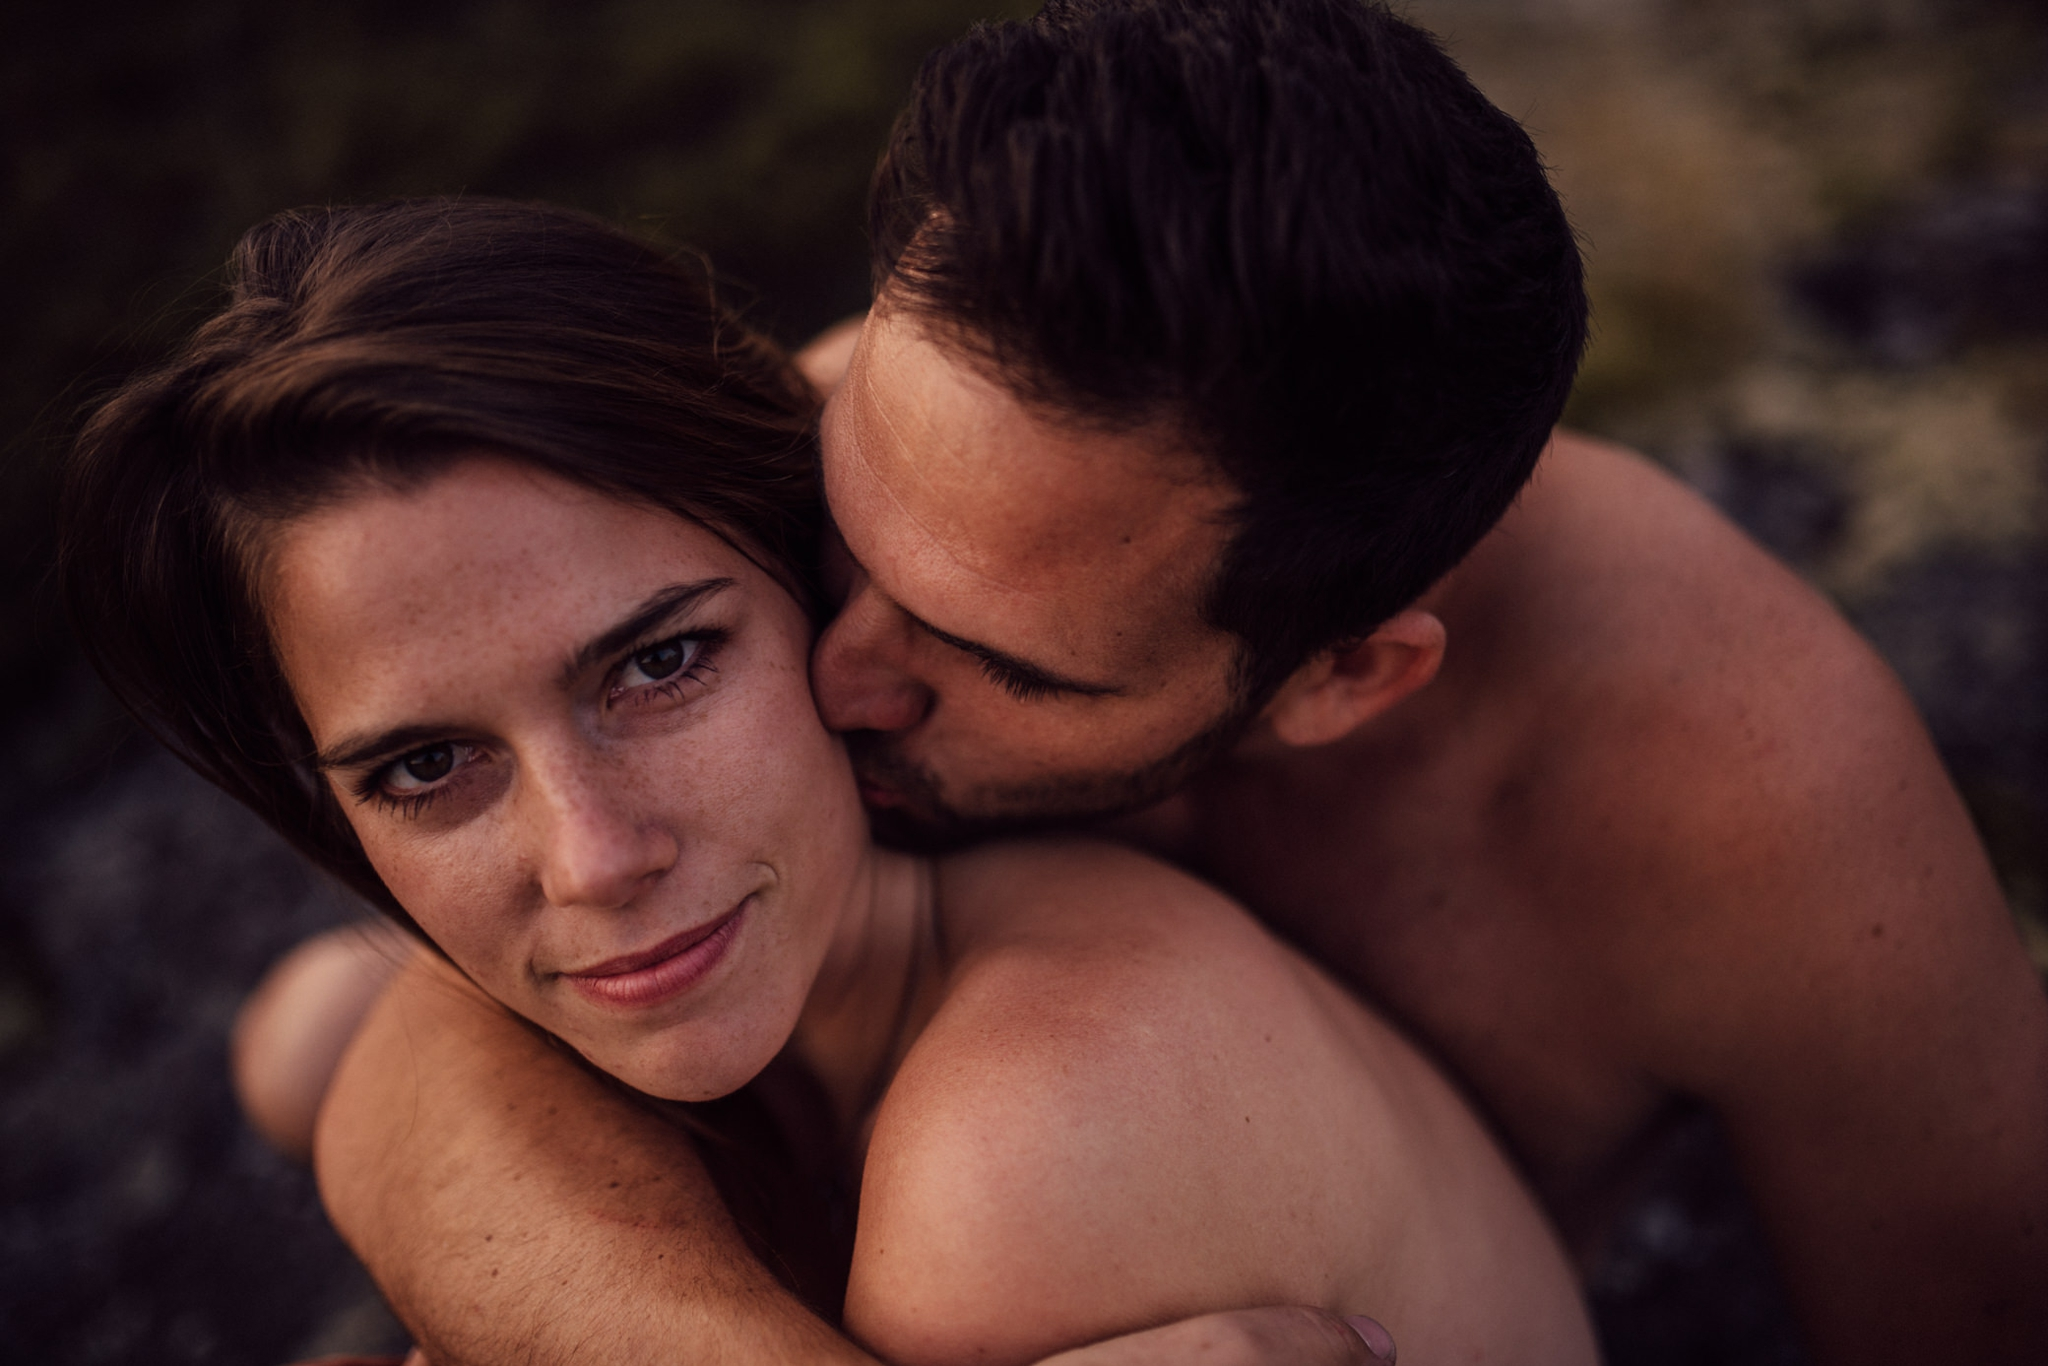 Magical nude engagement session